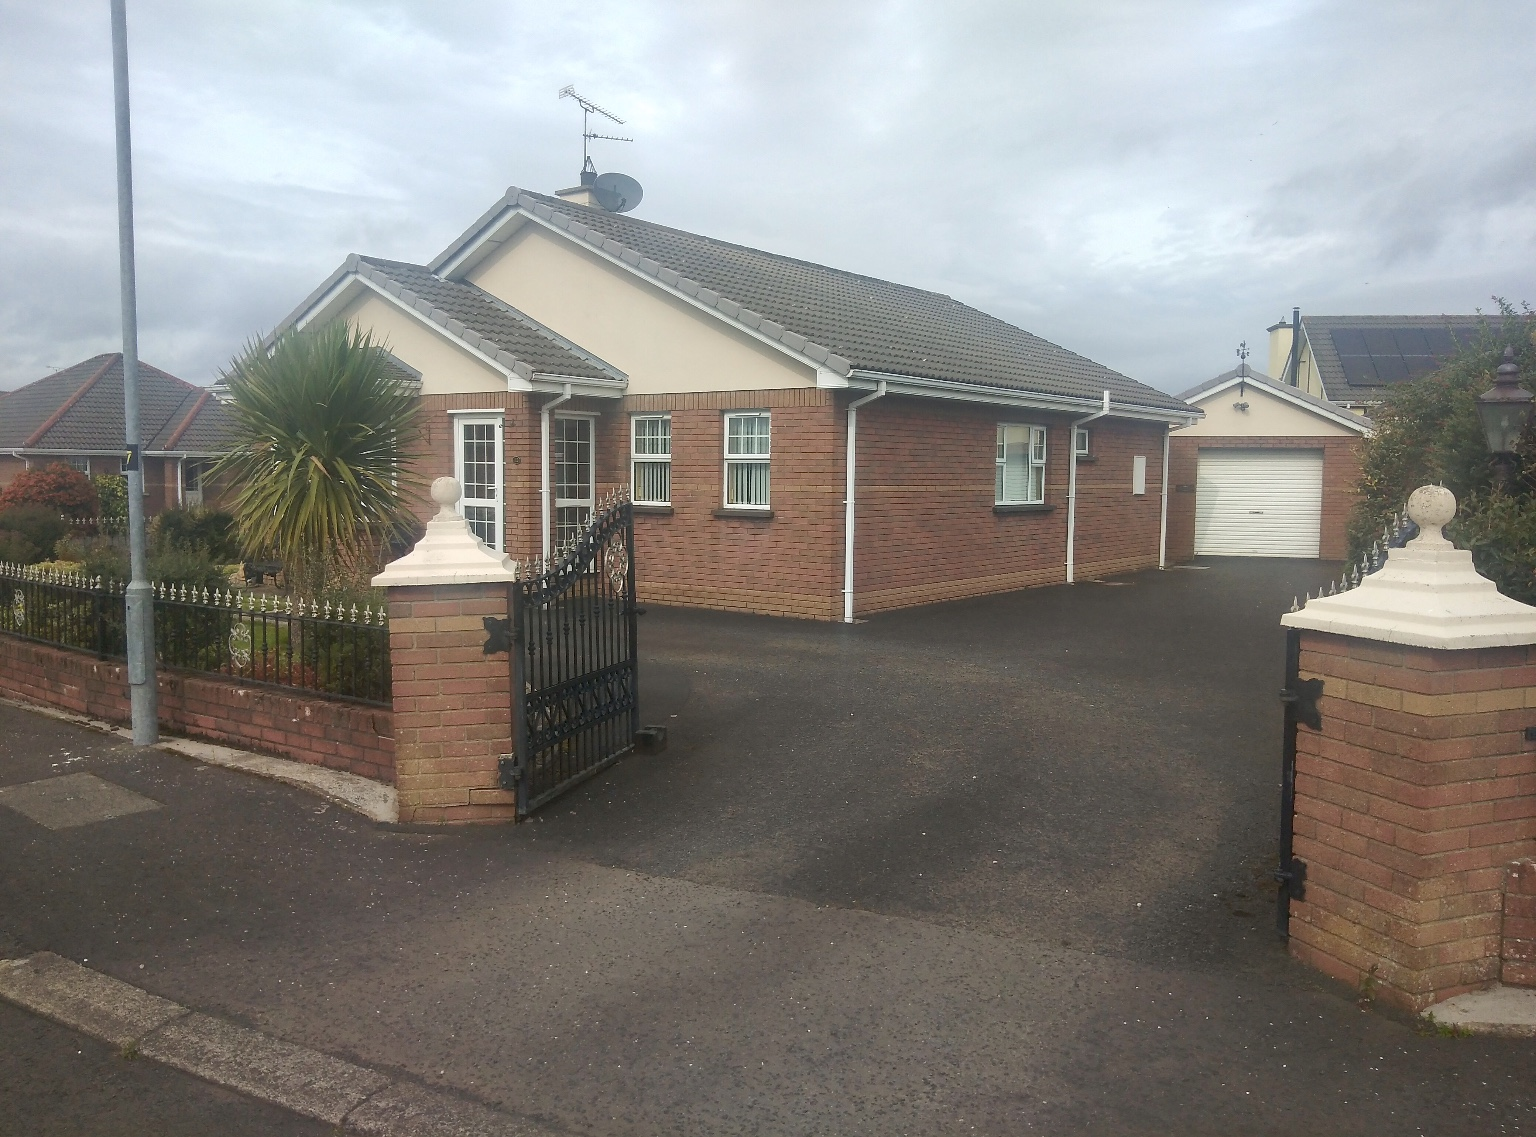 12 Riverview Ballykelly Limavady BT49 9NW